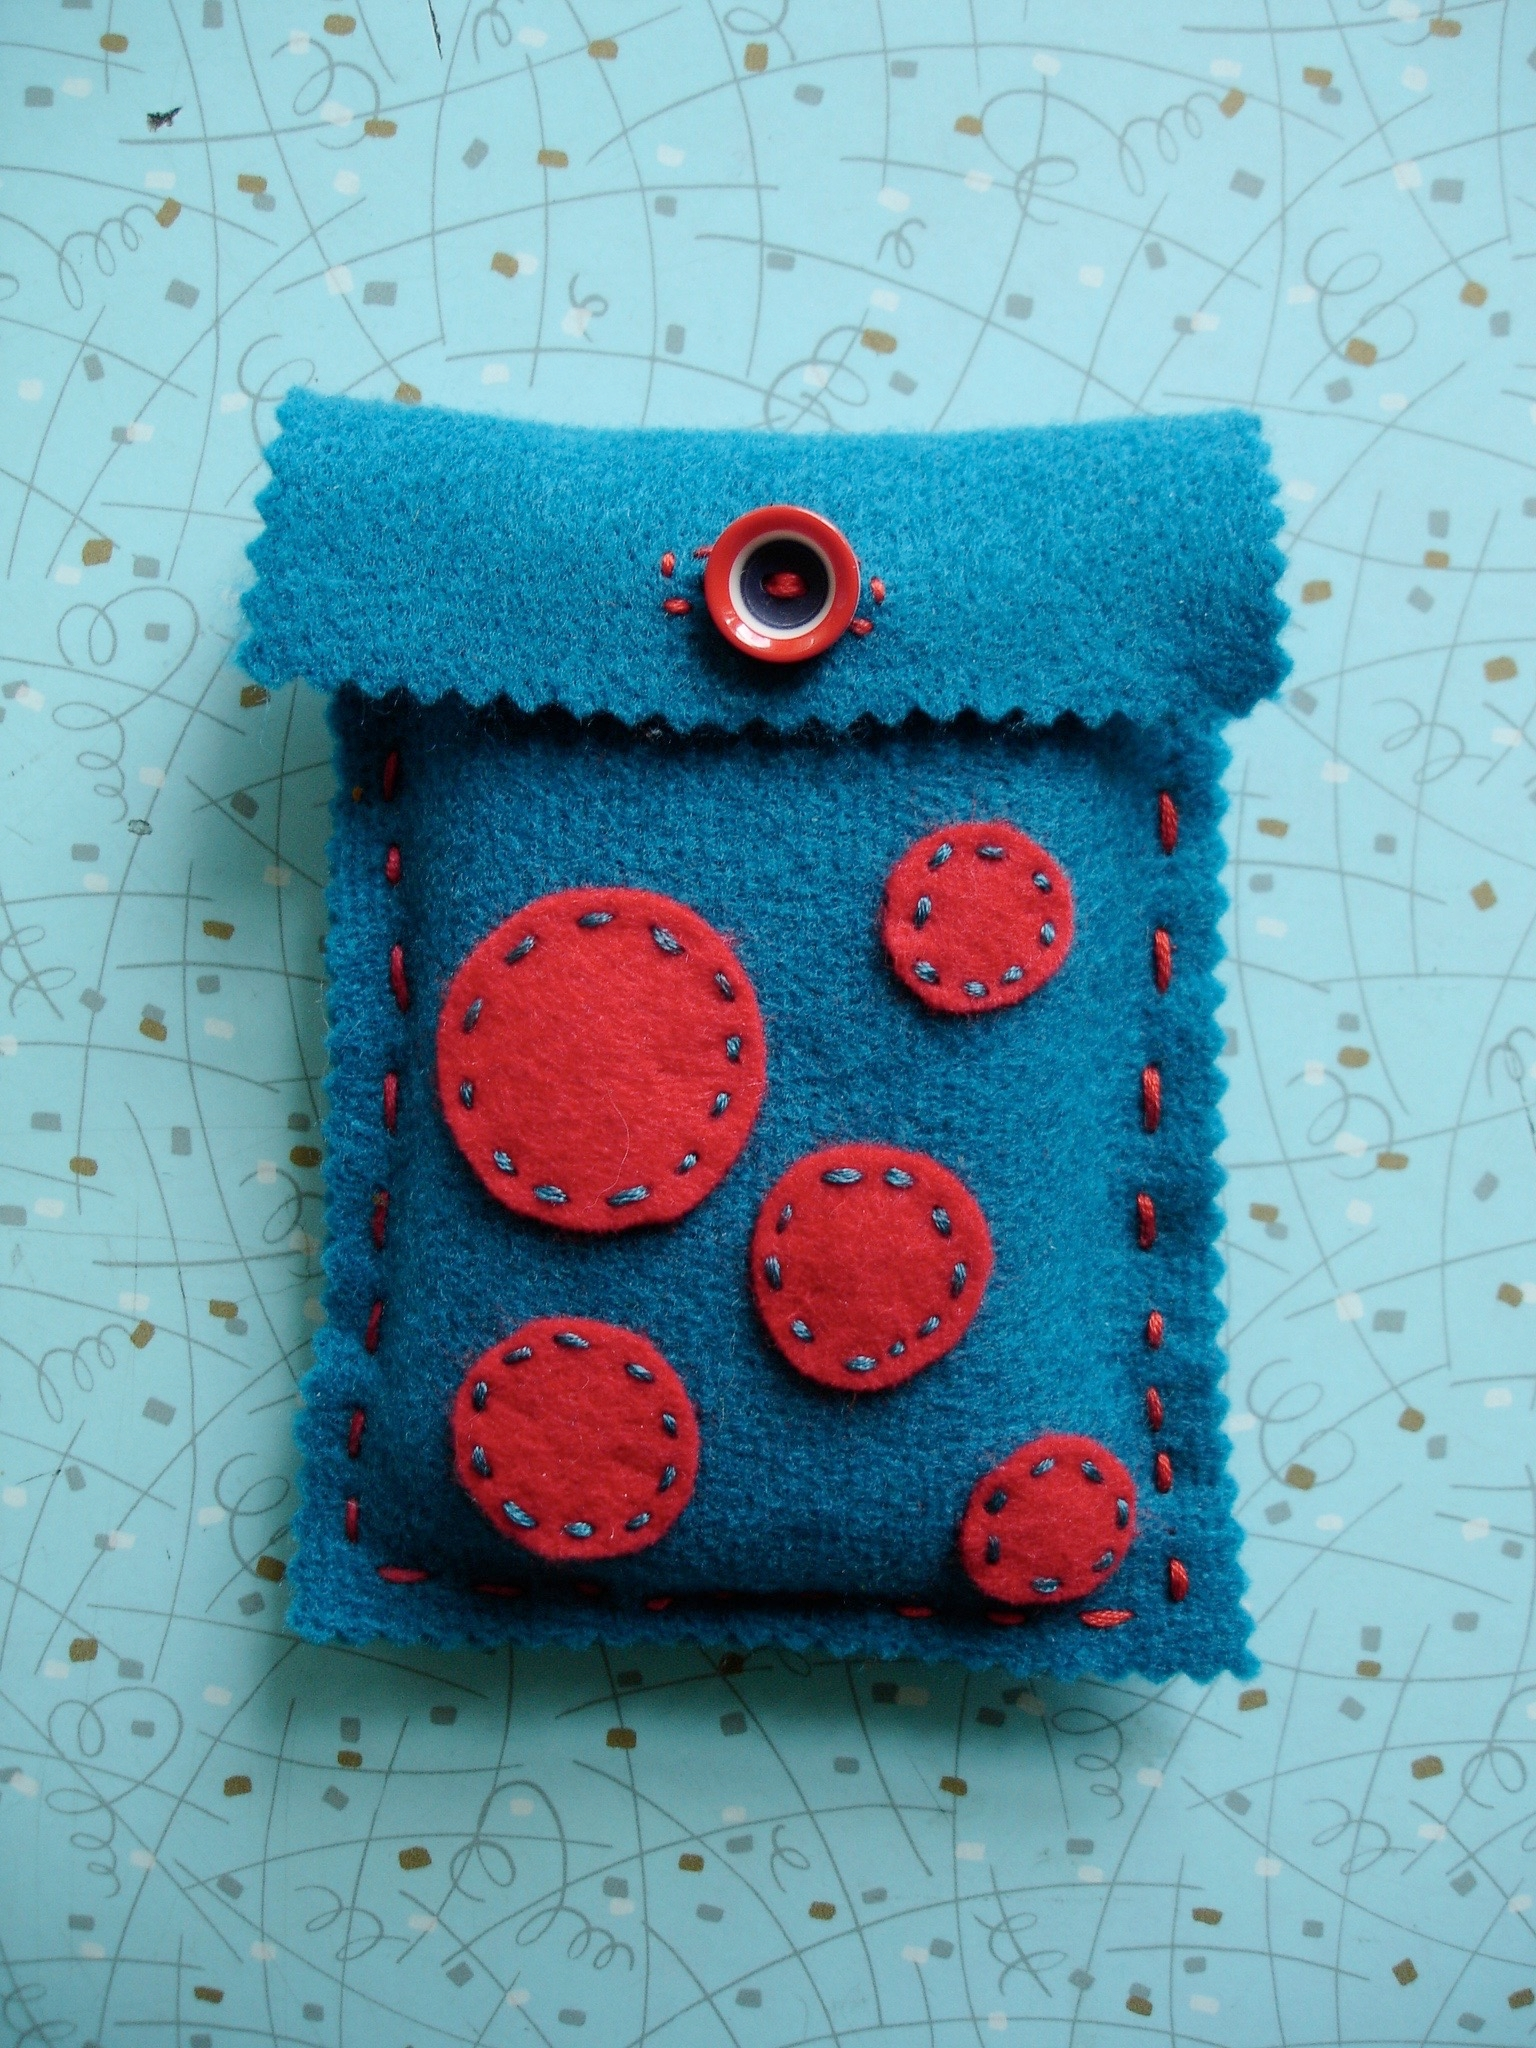 Felt Pouch -ages 8 and up - Design your own one of kind felt pouch!This project is perfect for storing your tech device, jewelry, legos and more! Kids will learn the basics of patterns and hand sewing to sew their pouch, and then finish off their designs with felt appliques, sparkles, pompoms, google eyes, trims and buttons. Your storage options just got a little bit more exciting!